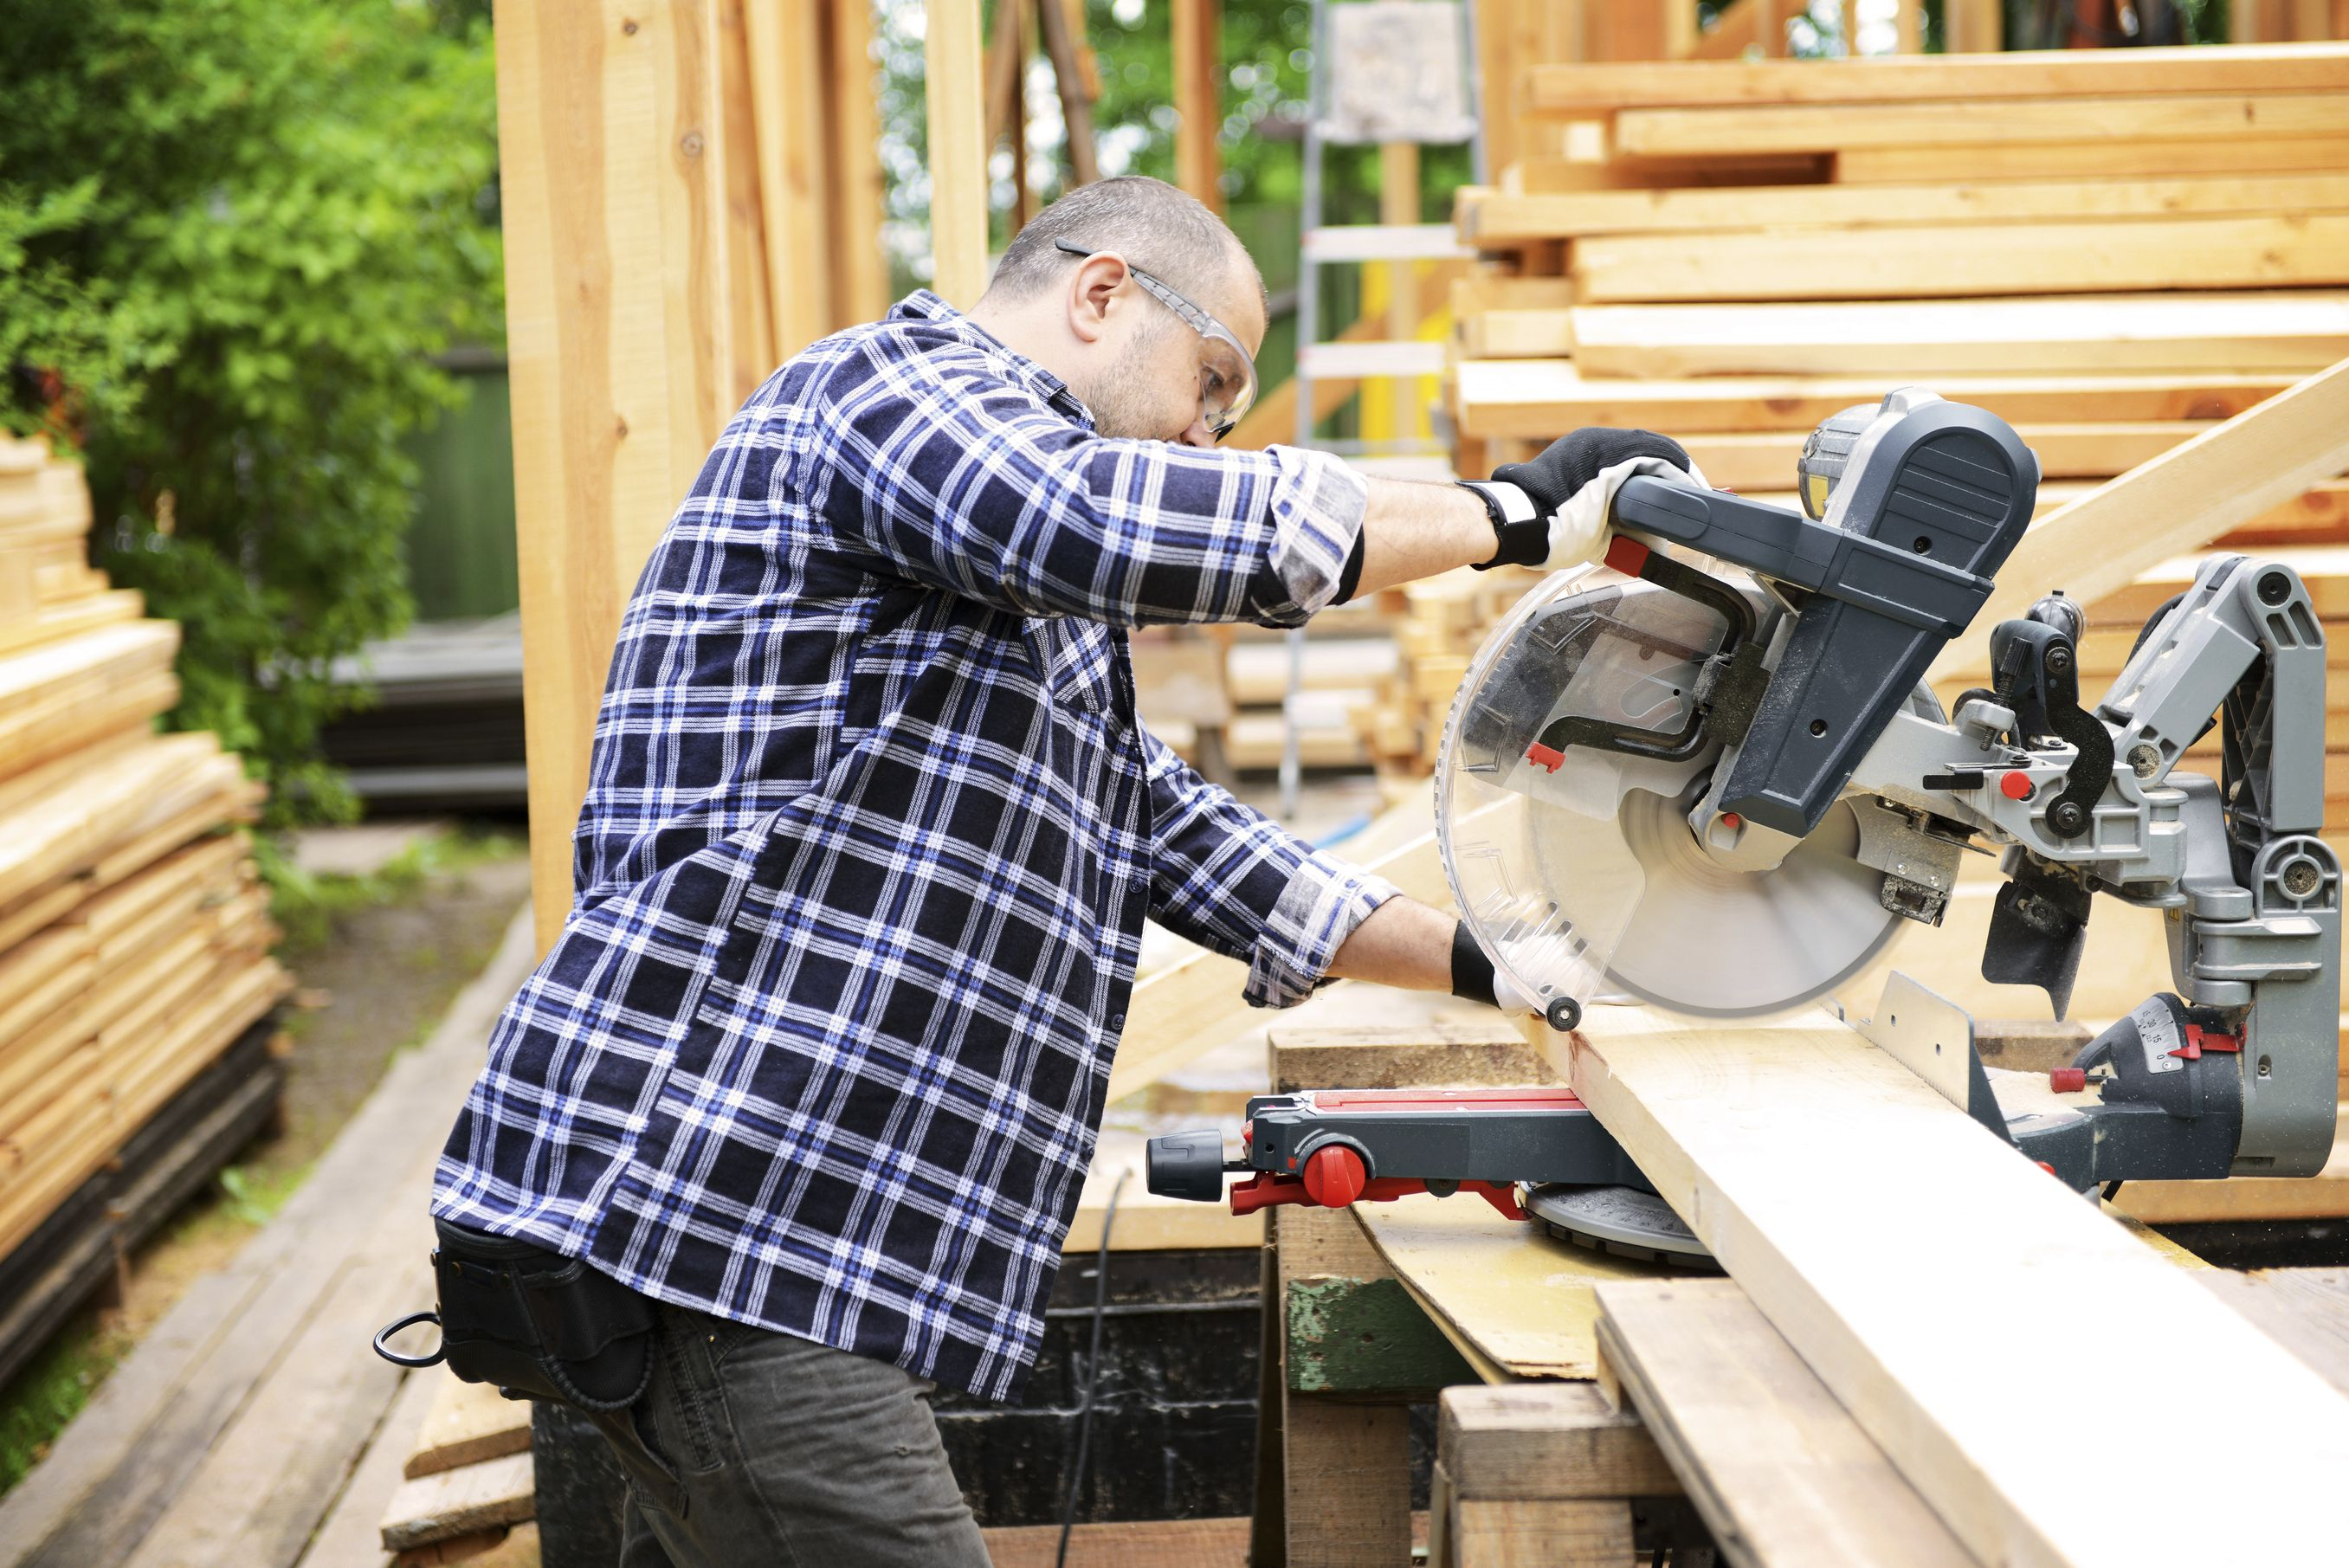 construction worker using table saw cutting wood for project